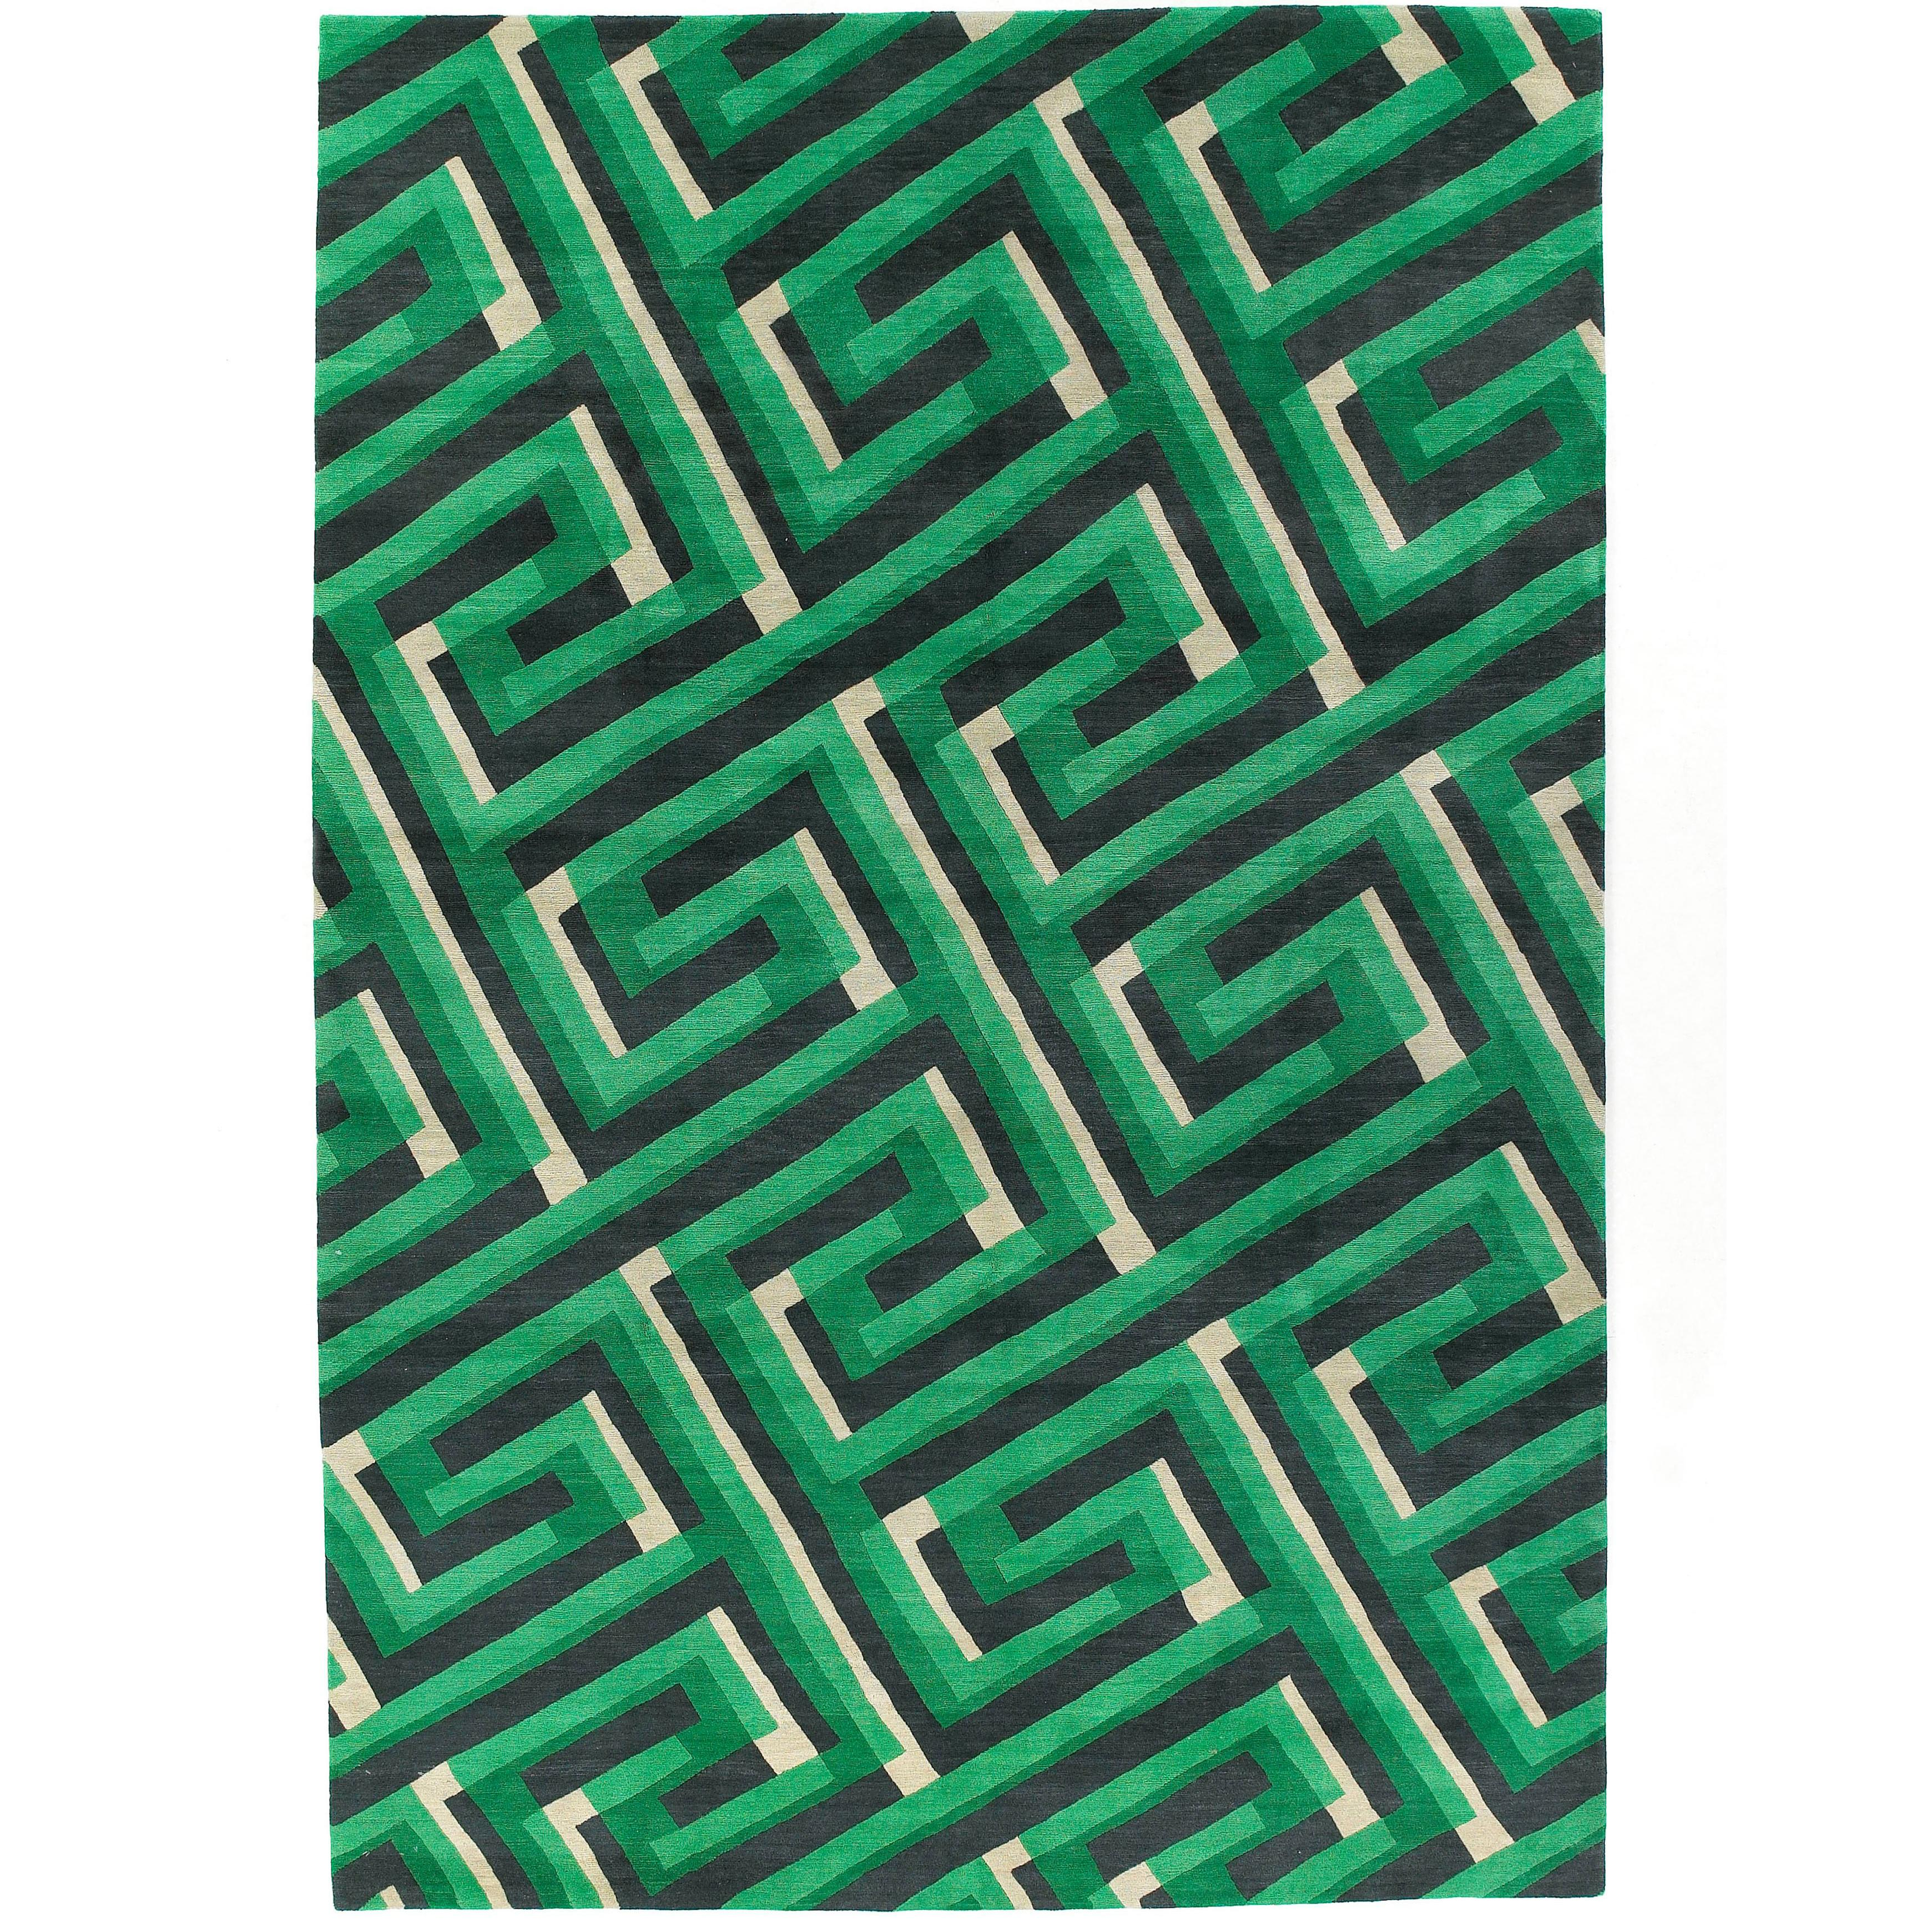 Key Shadow Hand-Knotted 10x8 Rug in Wool by Suzanne Sharp